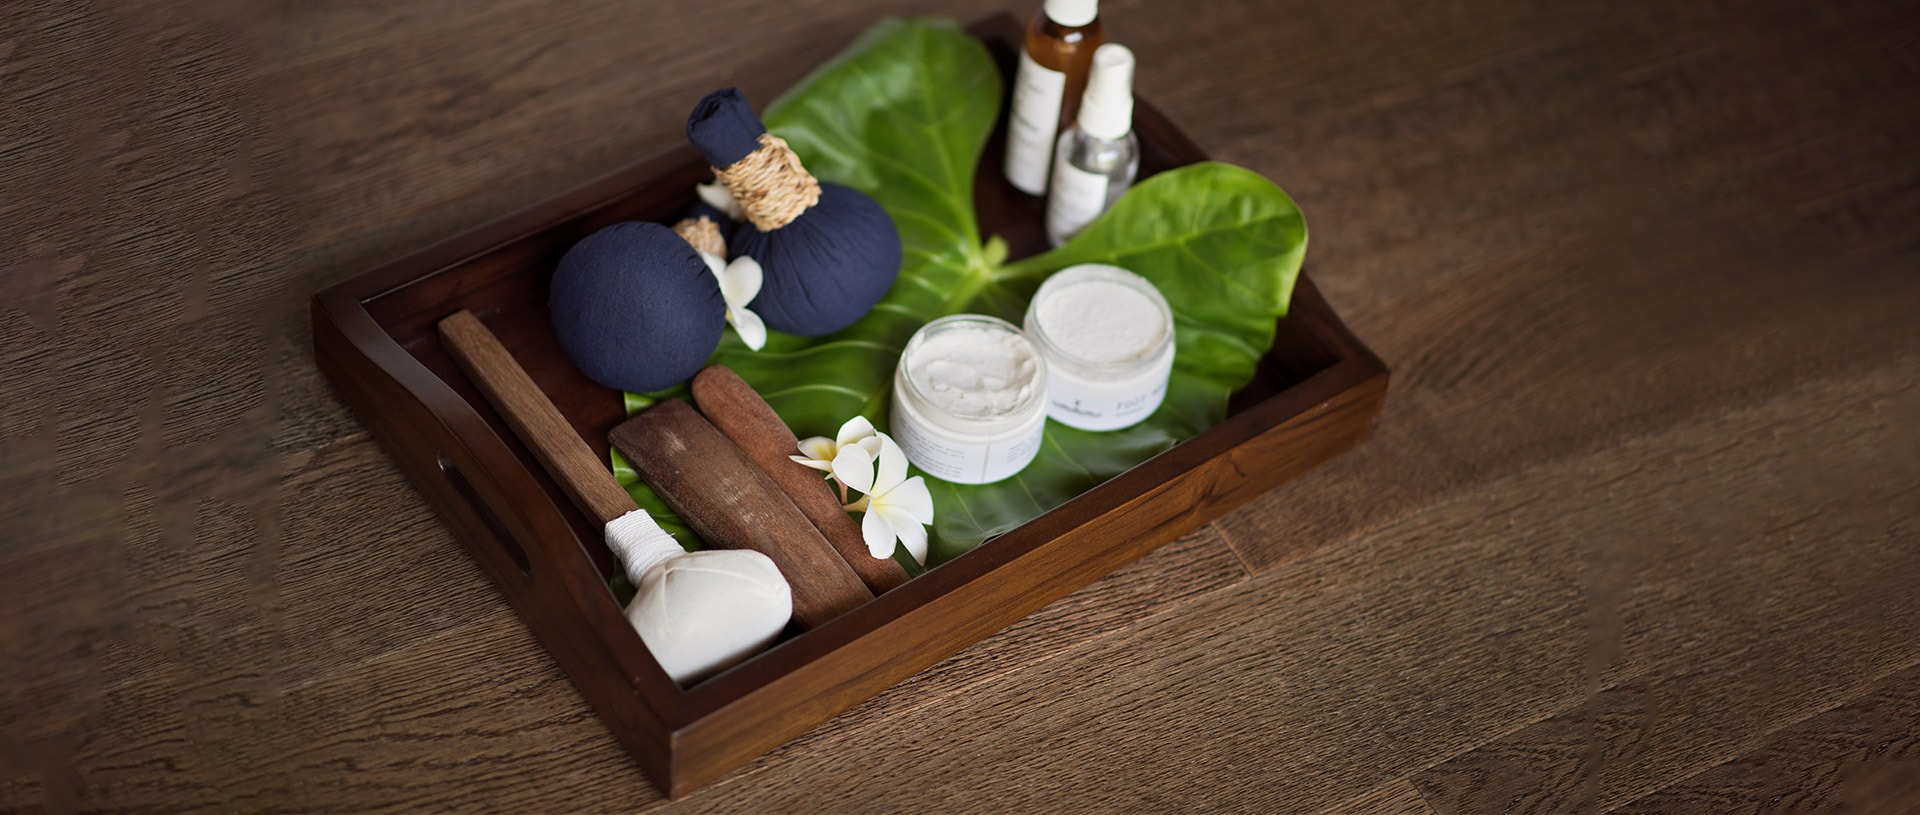 Manicure and pedicure at  Heylhi  Spa